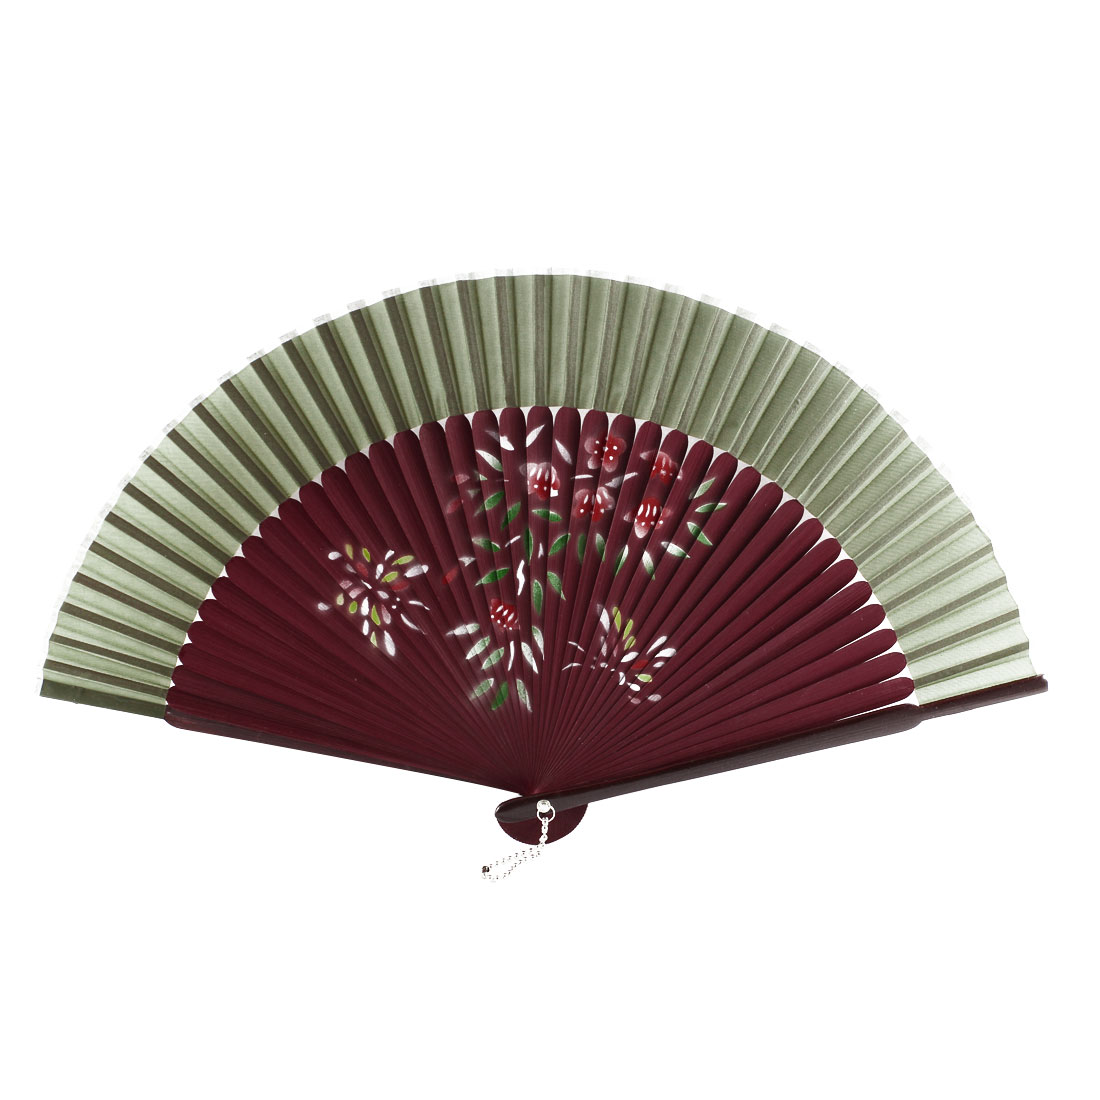 Lady Dancer Wedding Party Flower Printed Nylon Bamboo Frame Folded Hand Held Fan Gift Decoration Army Green Burgundy